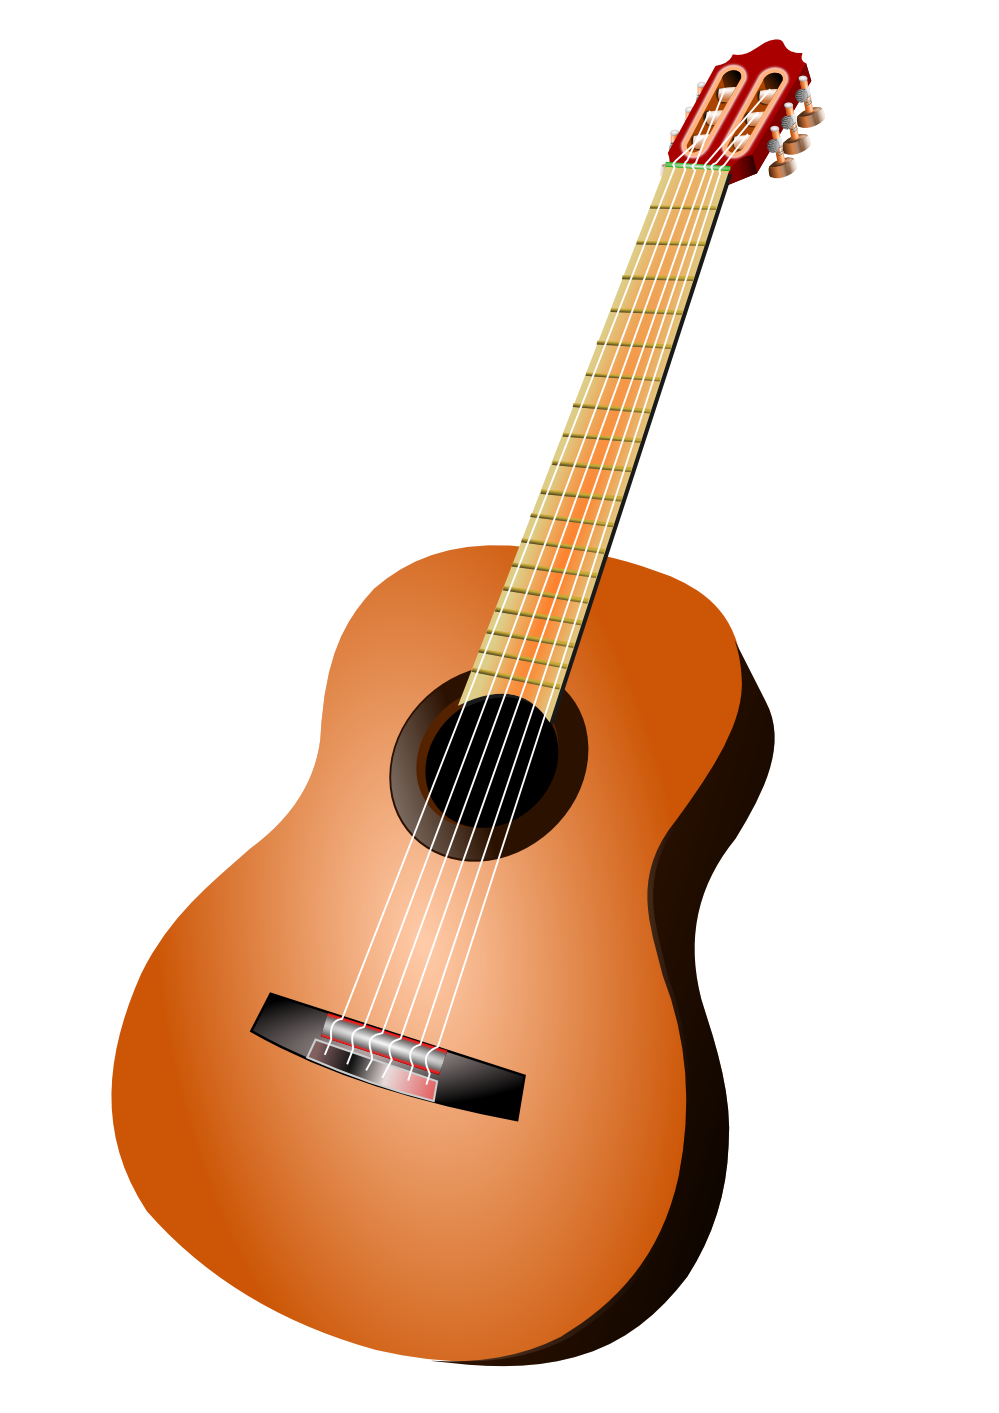 Guitar clipart heart. Pin by hopeless on